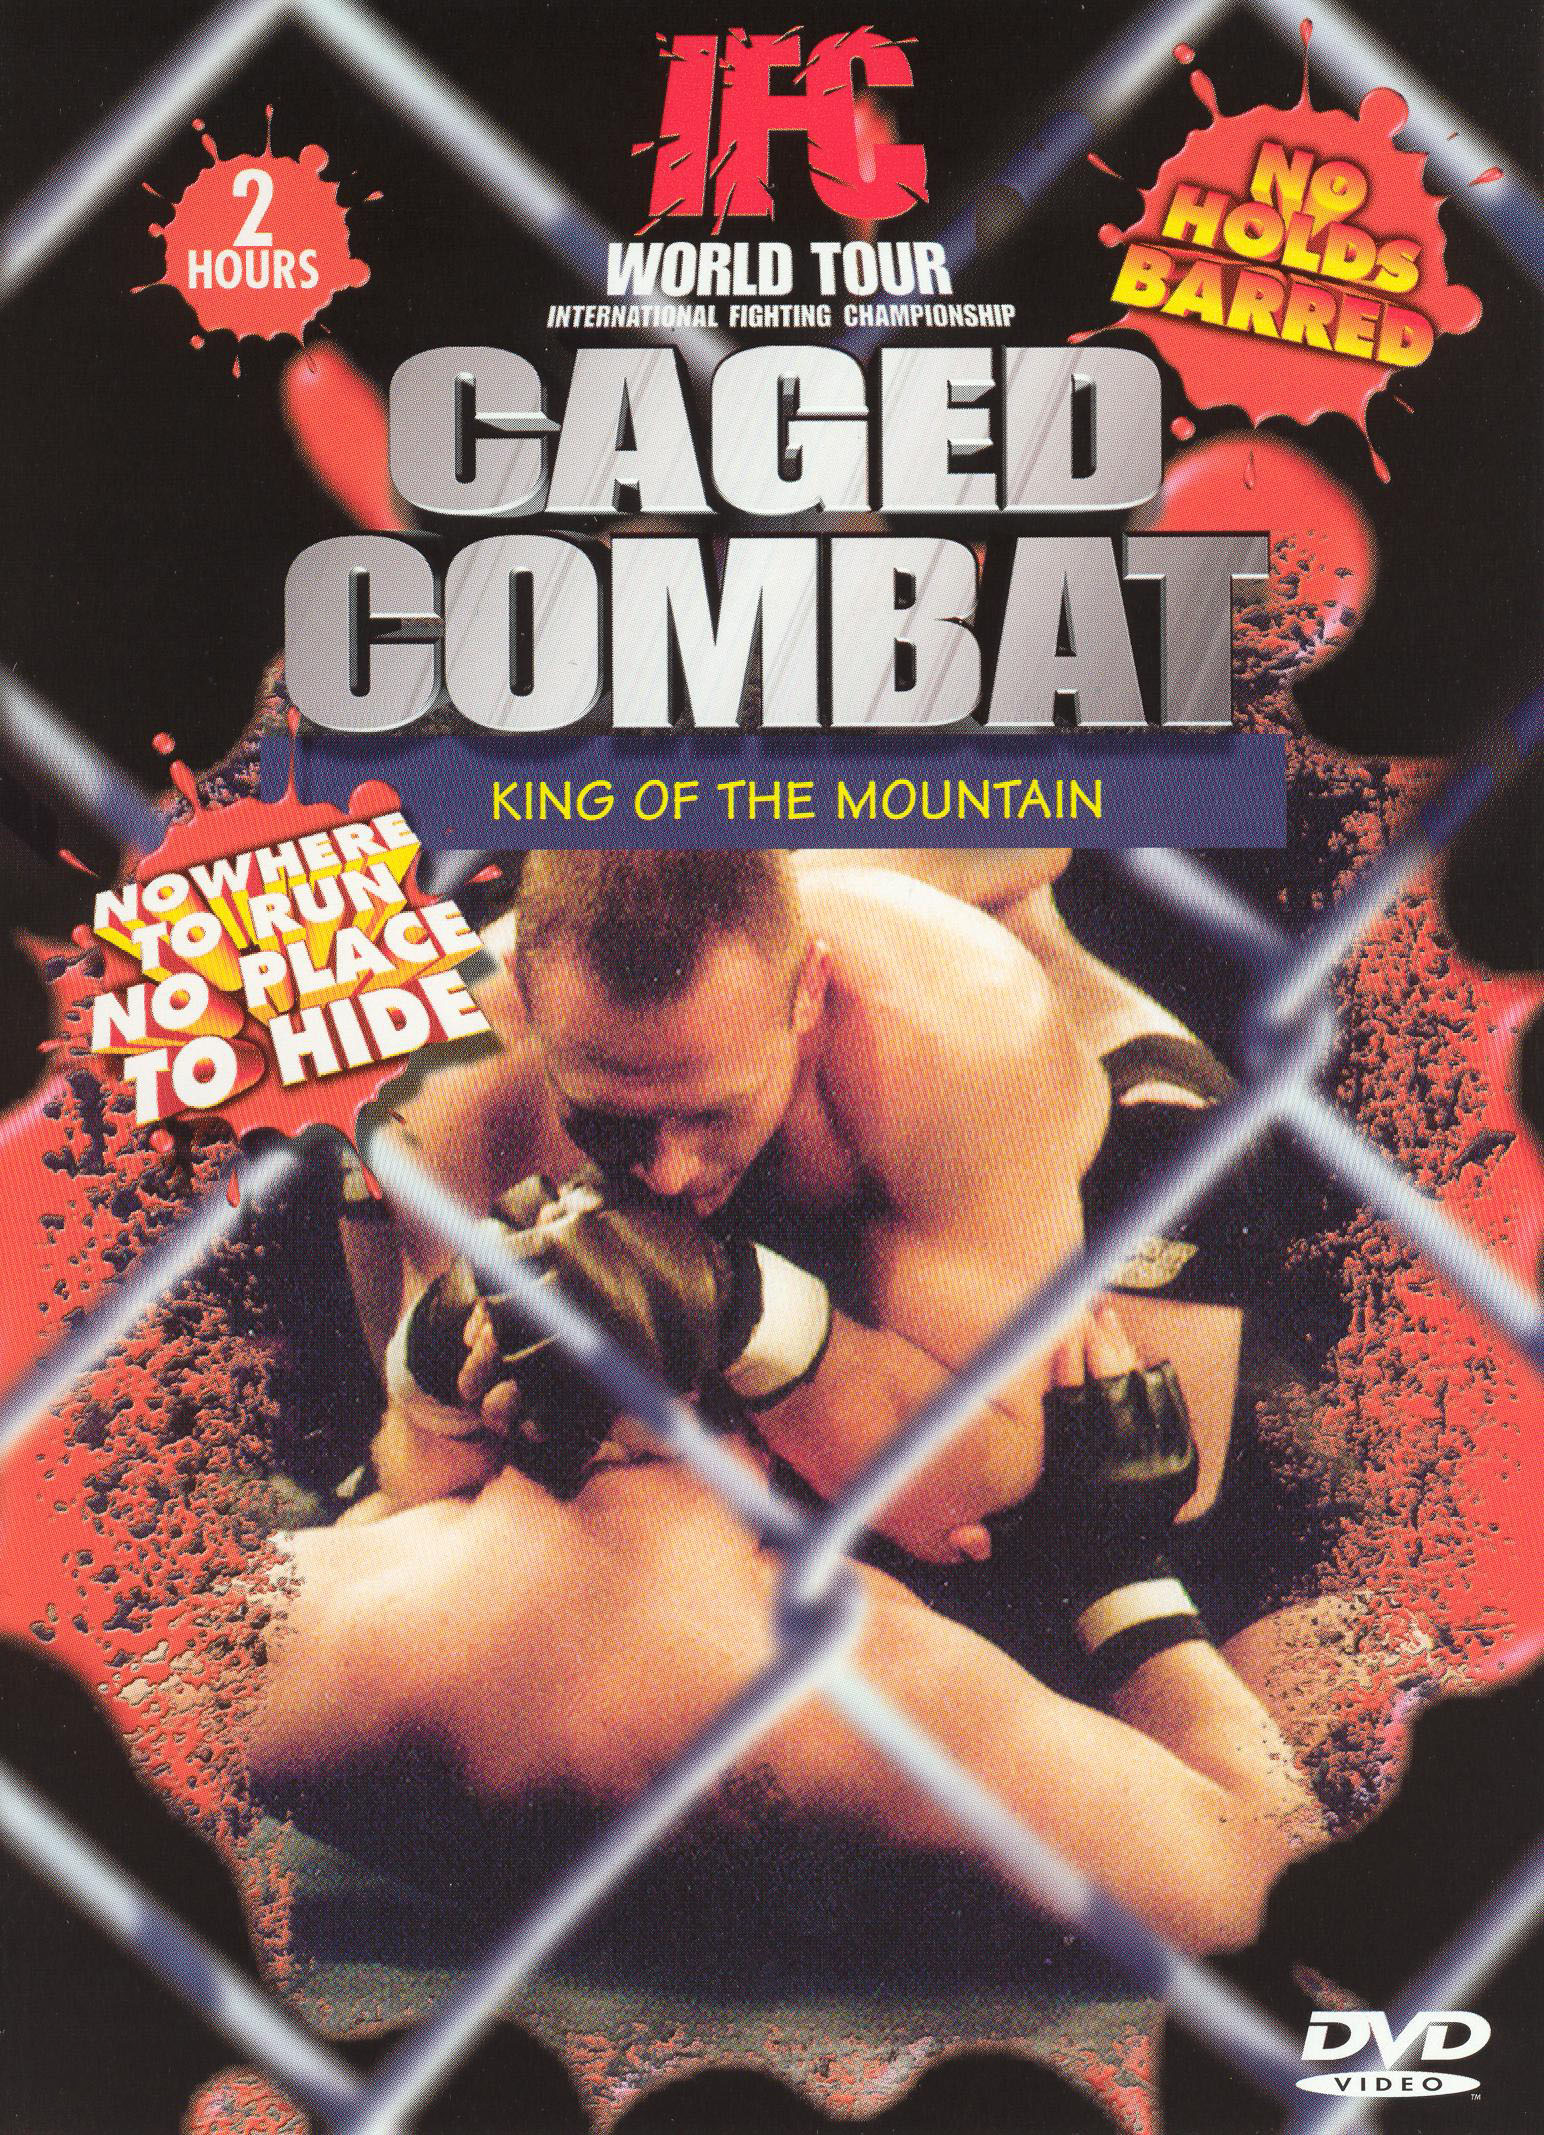 IFC World Tour: Caged Combat - King of the Mountain